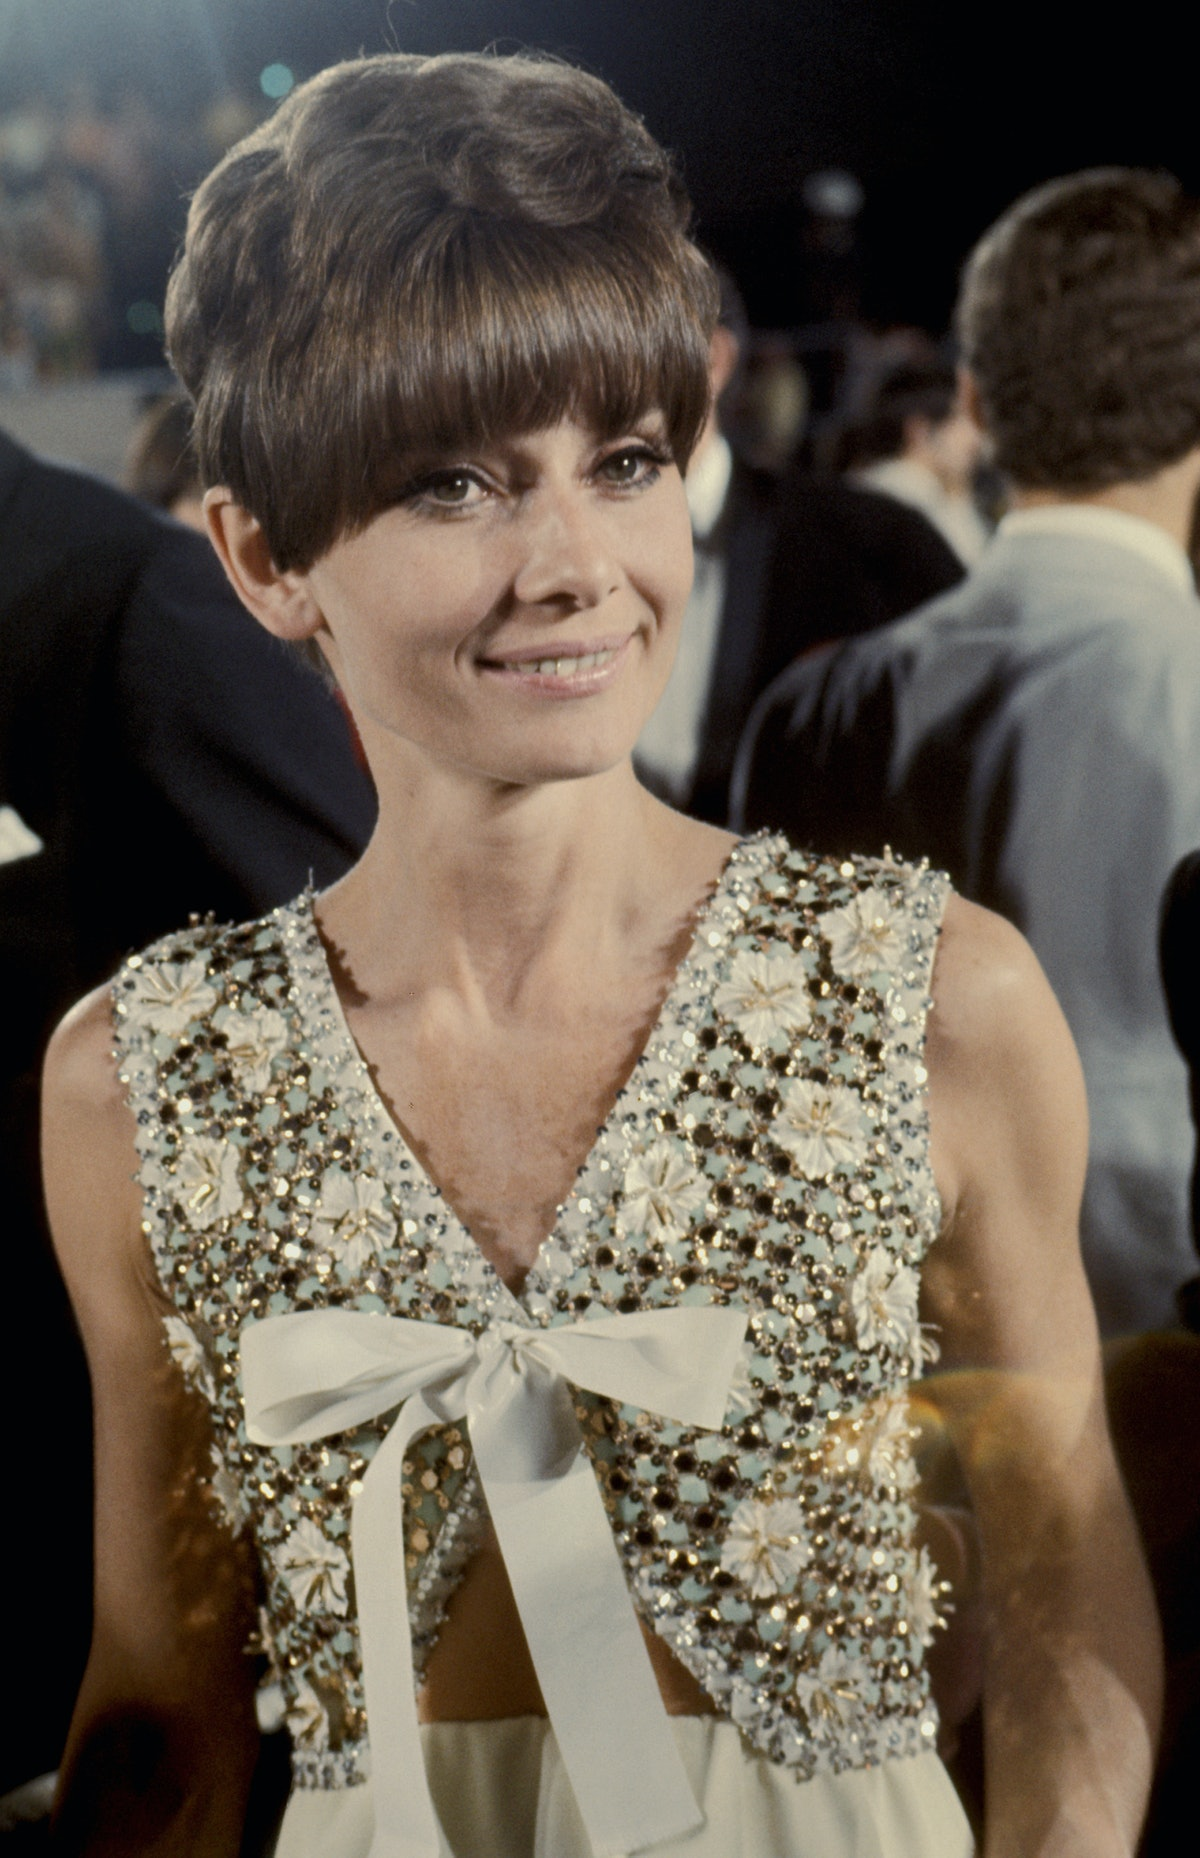 Audrey Hepbrun (Photo by Ron Galella/Ron Galella Collection via Getty Images) *** Local Caption ***